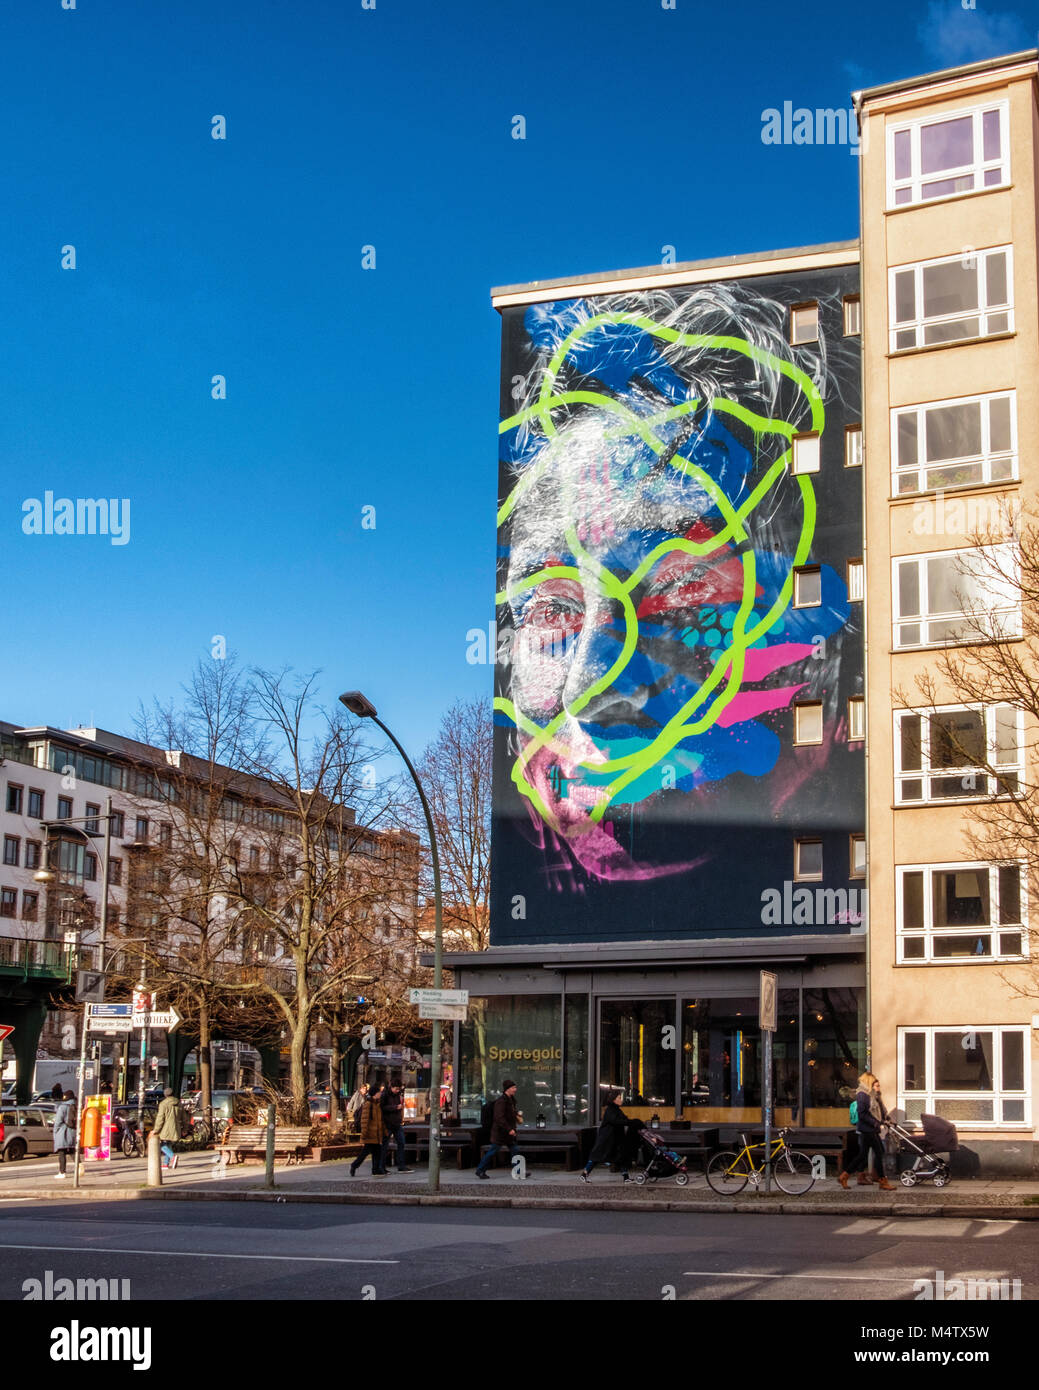 Berlin Prenzlauerberg,street view with shops, apartment buildings,people walking on pavement and colourful wall - Stock Image